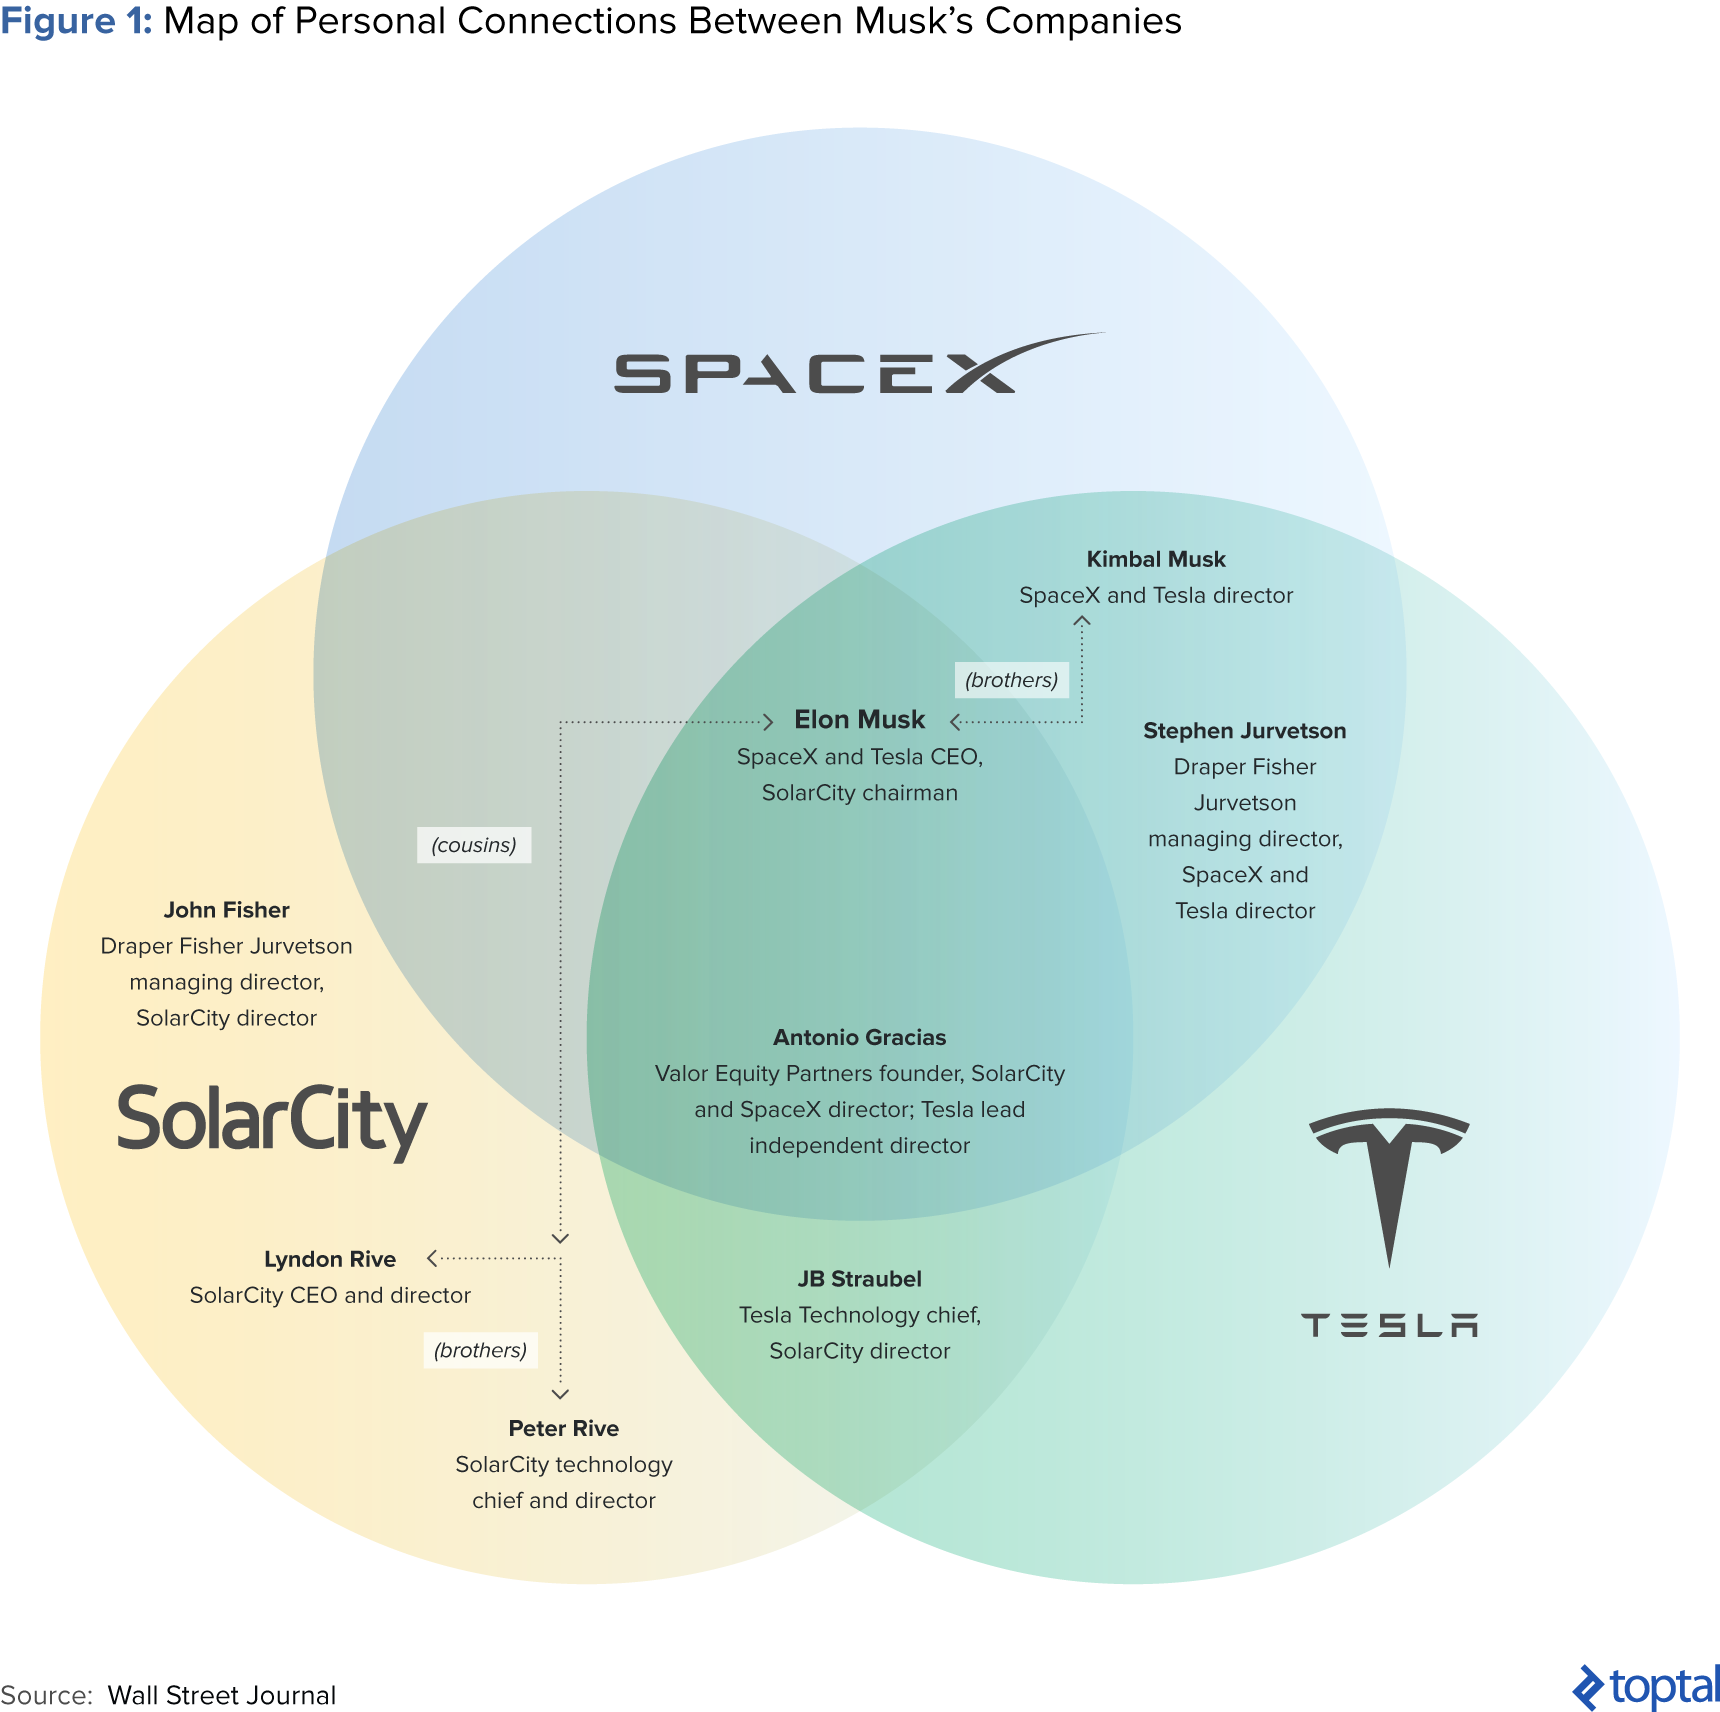 Figure 1: Map of Personal Connections between Musk's Companies